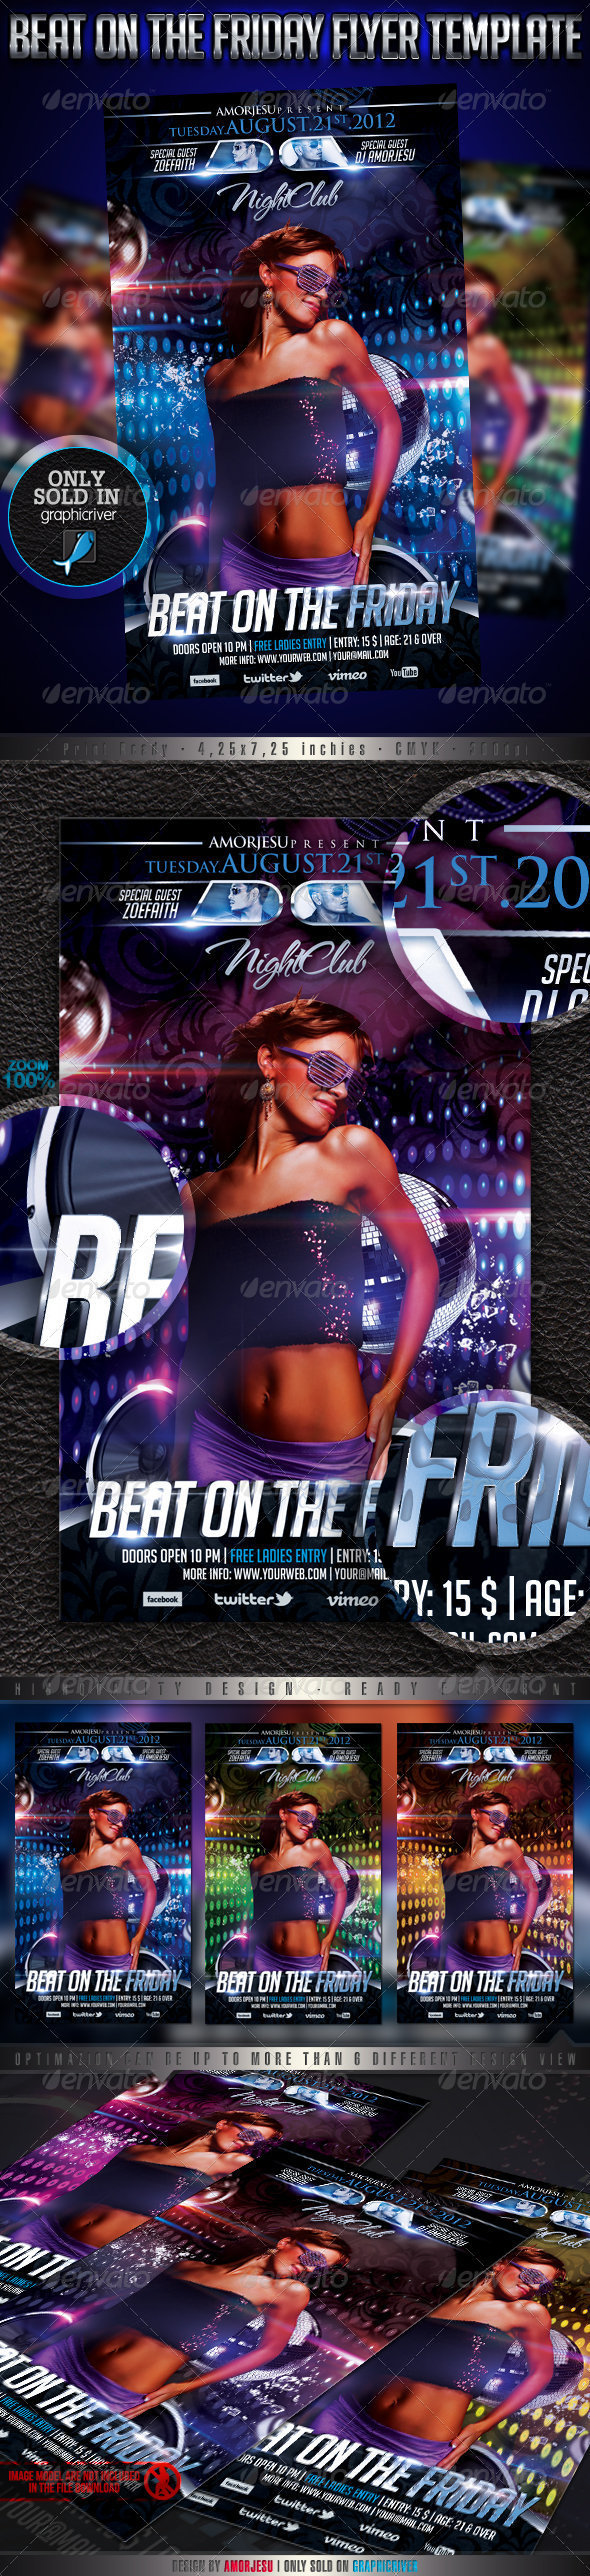 beat on the friday flyer template graphicriver. Black Bedroom Furniture Sets. Home Design Ideas